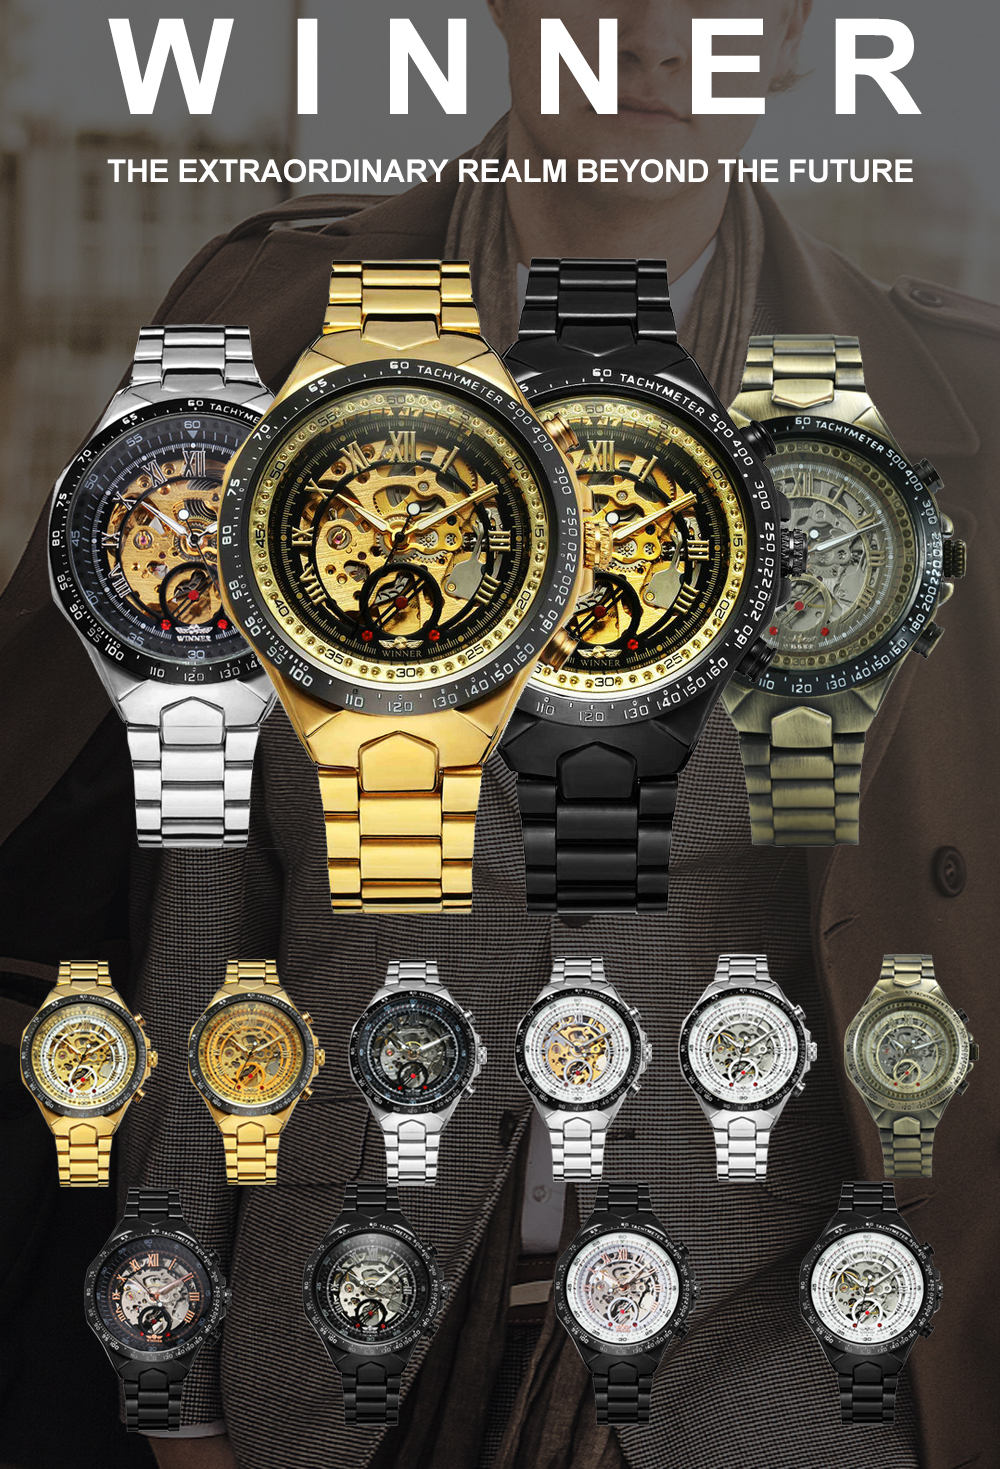 Image 2 - WINNER Official Vintage Fashion Men Mechanical Watches Metal Strap Top Brand Luxury Best Selling Vintage Retro Wristwatches +BOXMechanical Watches   -